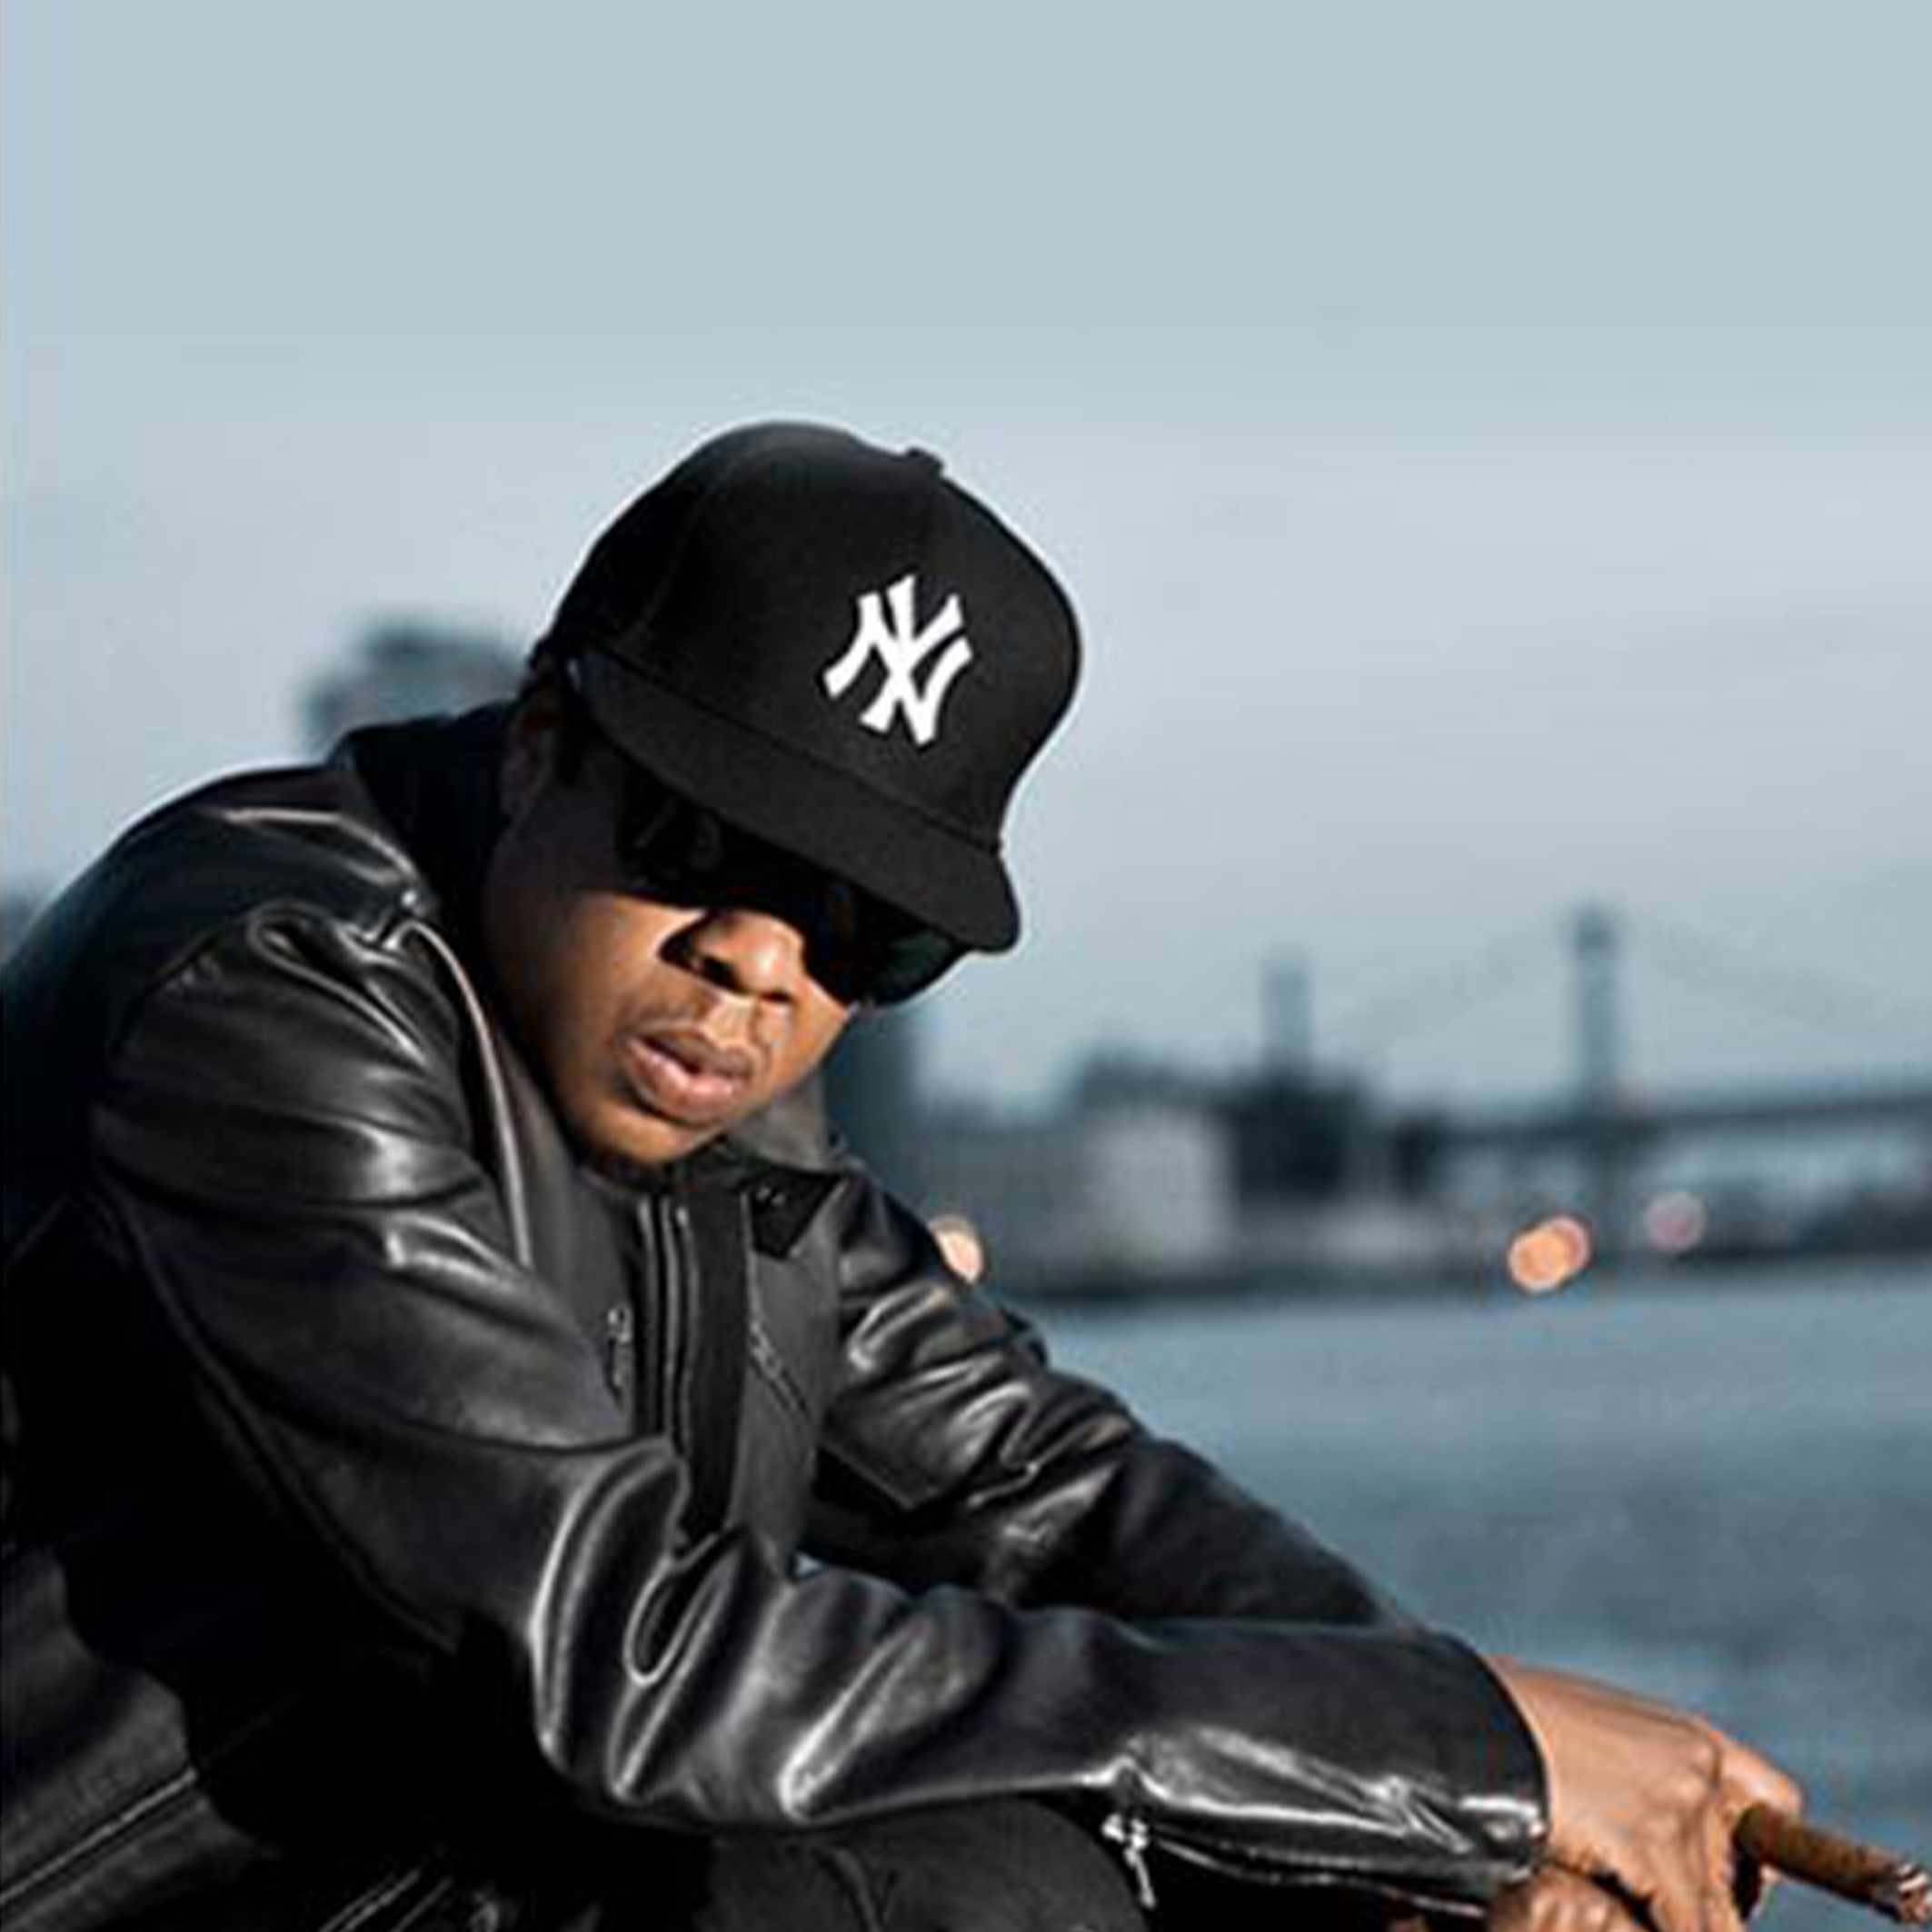 Jay Z to release new album 4:44 via Tidal and Sprint telephony company